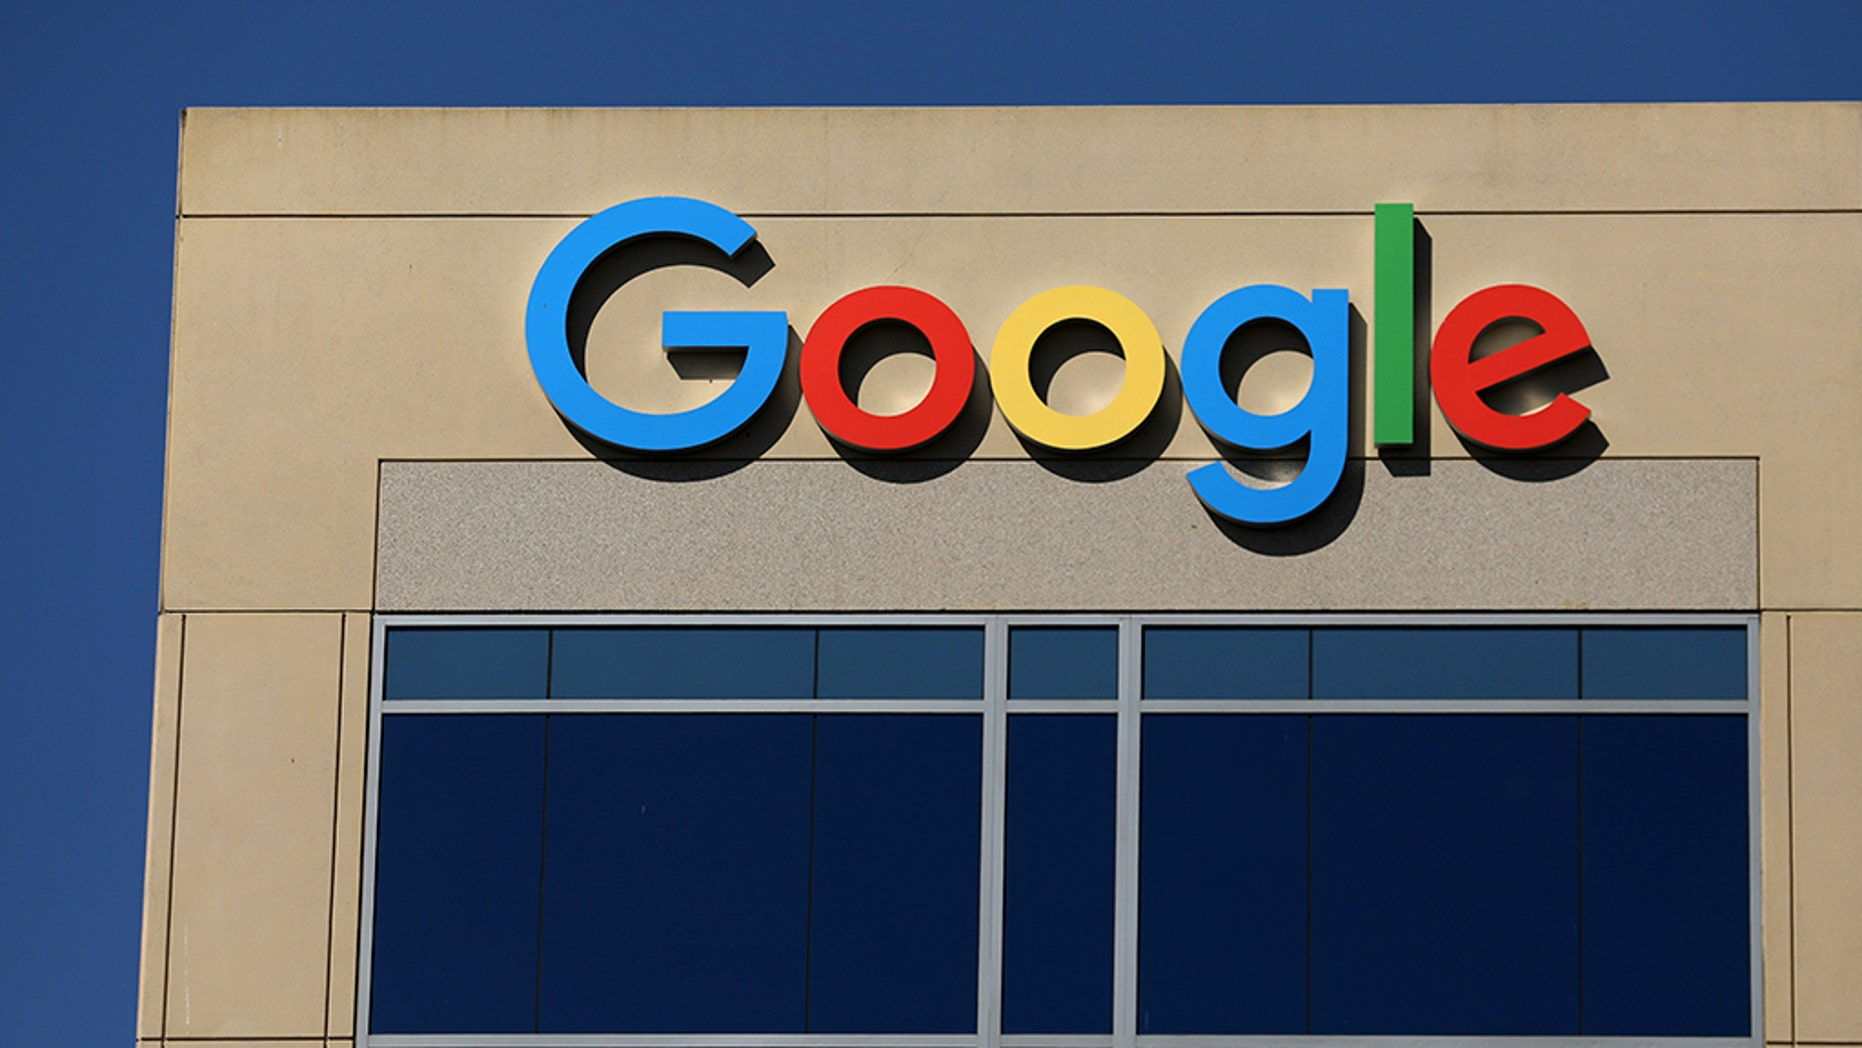 Google offers users the chance to play a text adventure game.